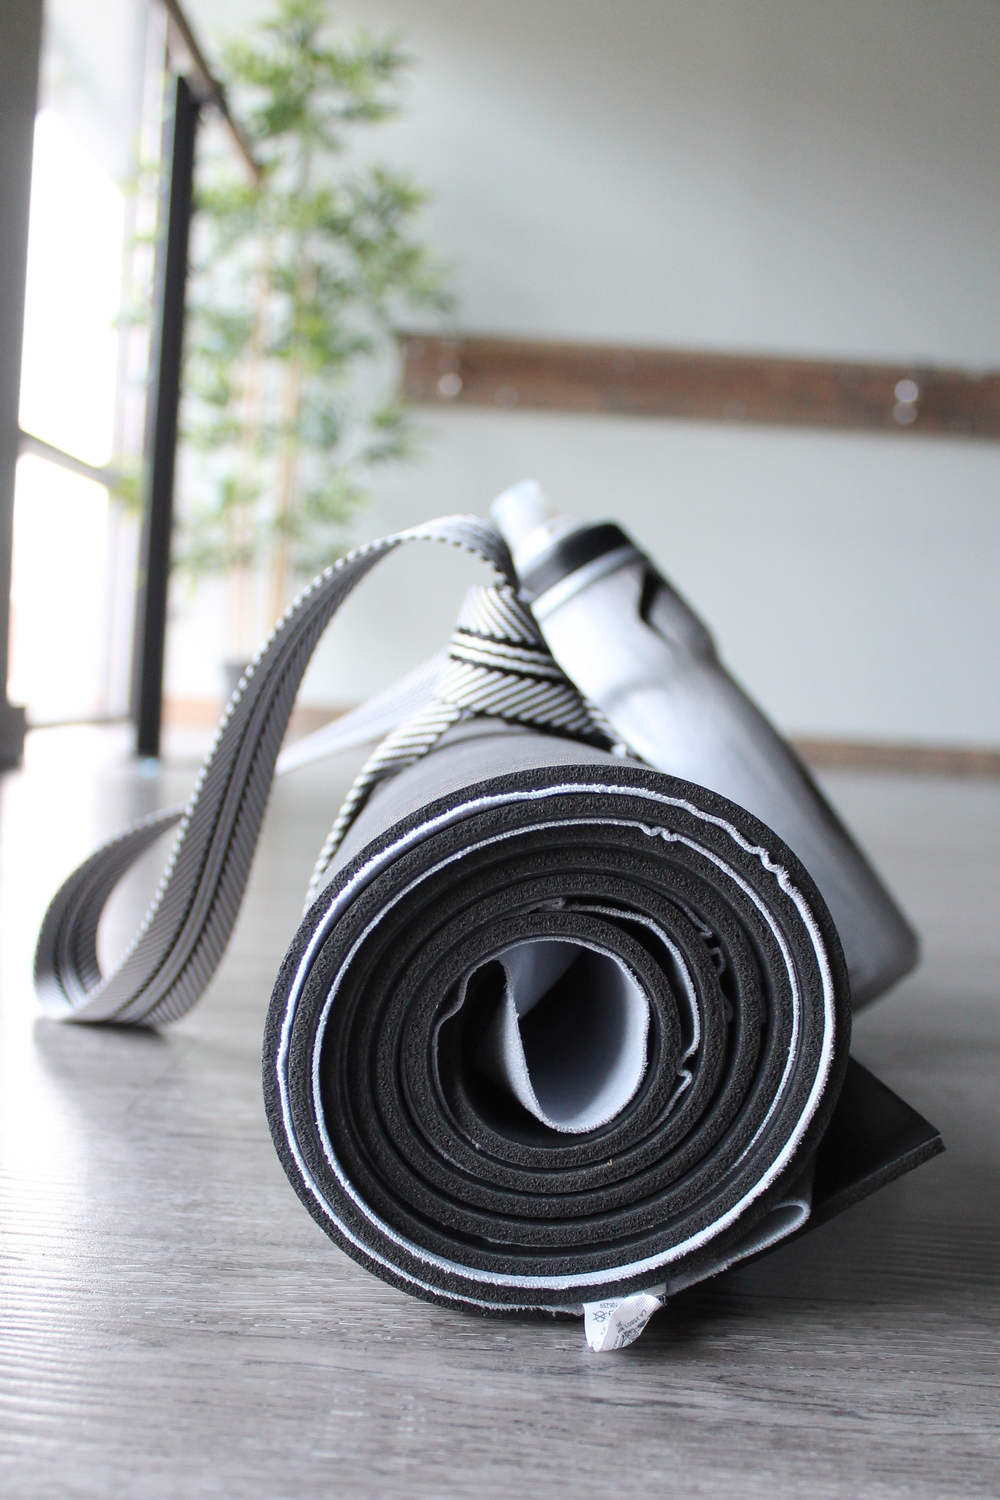 The mat, lululemon, Yoga, Yogi, Restoration, Core, Flexibility, Fitness Review